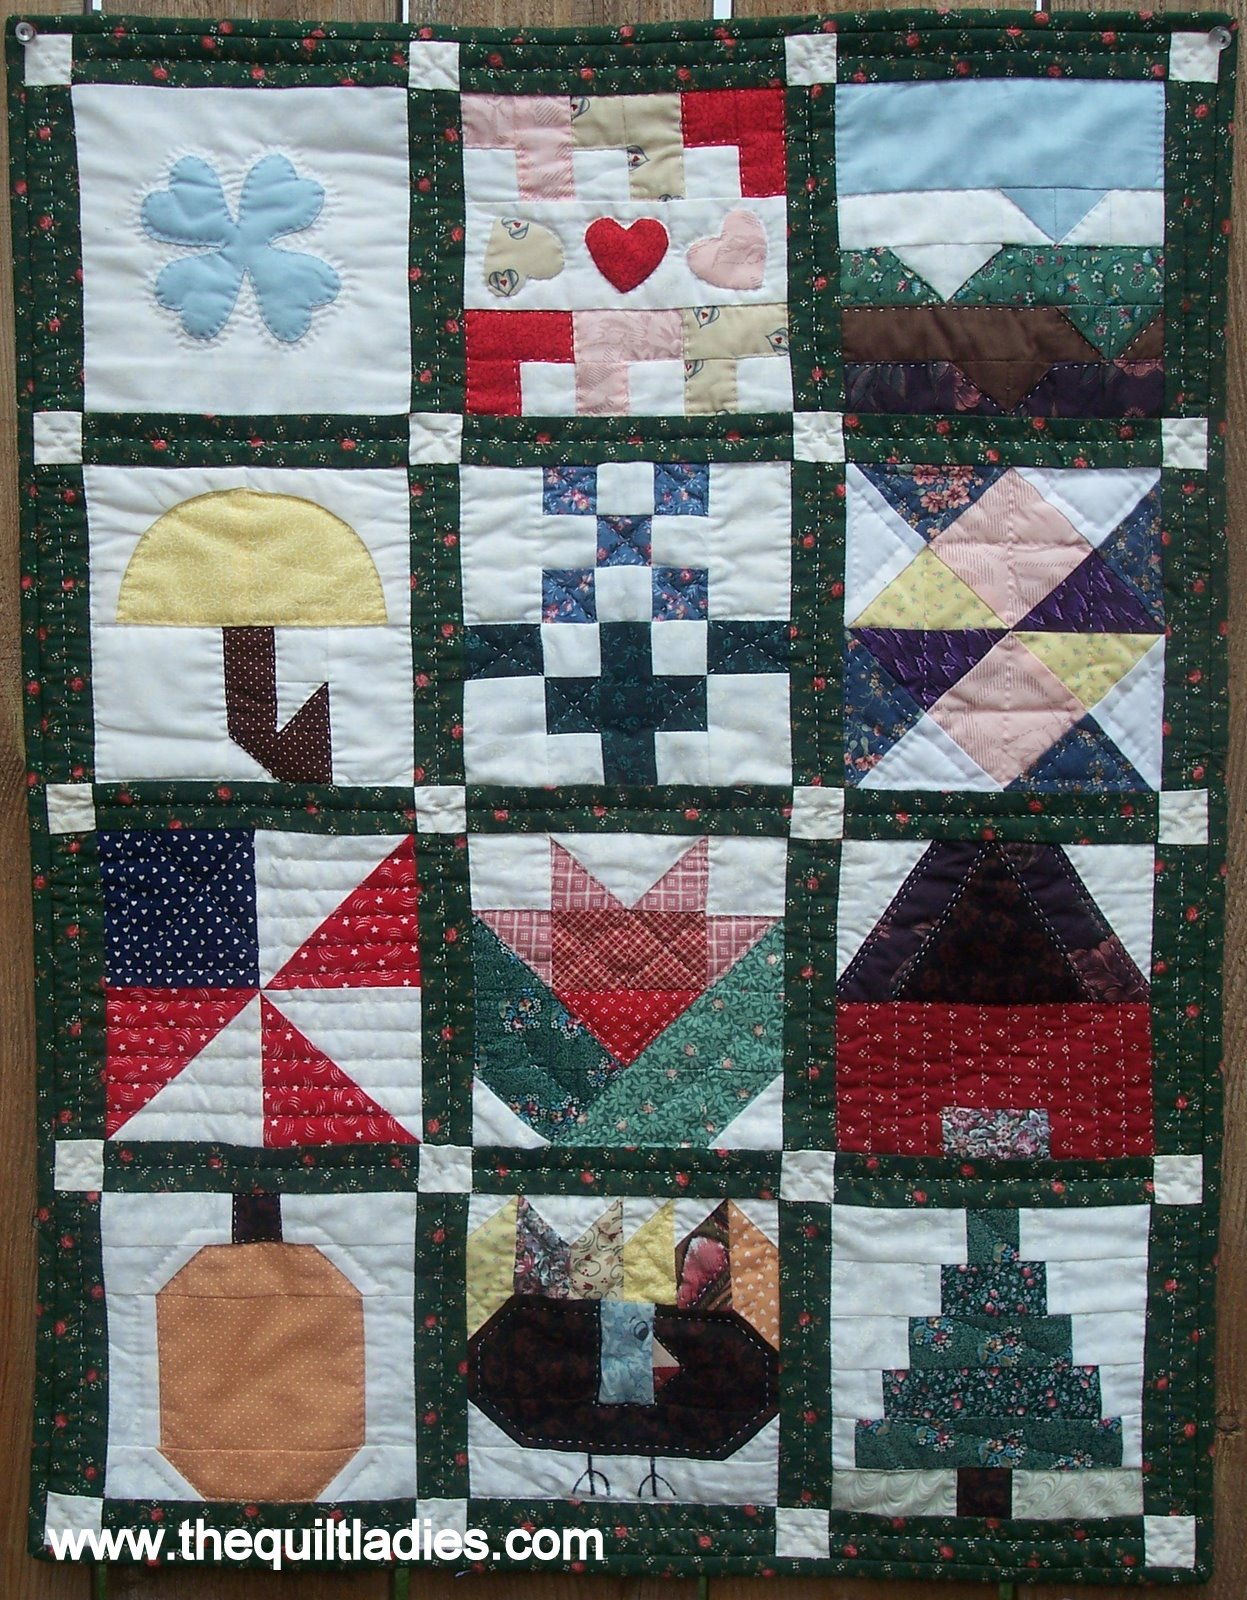 Quilt Guild Newsletter Ideas : The Quilt Ladies Book Collection: Little Quilt Block of the Month from Guild Newsletter